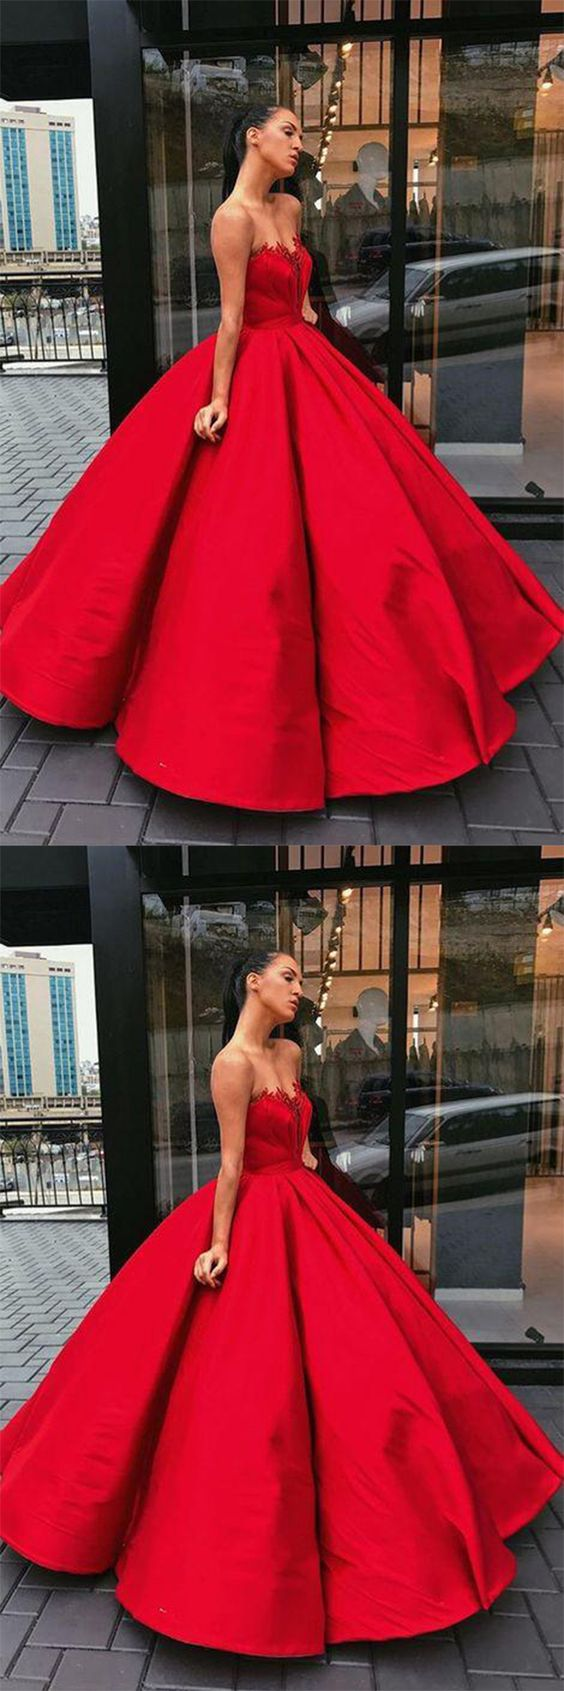 Fullsize Of Red Prom Dress